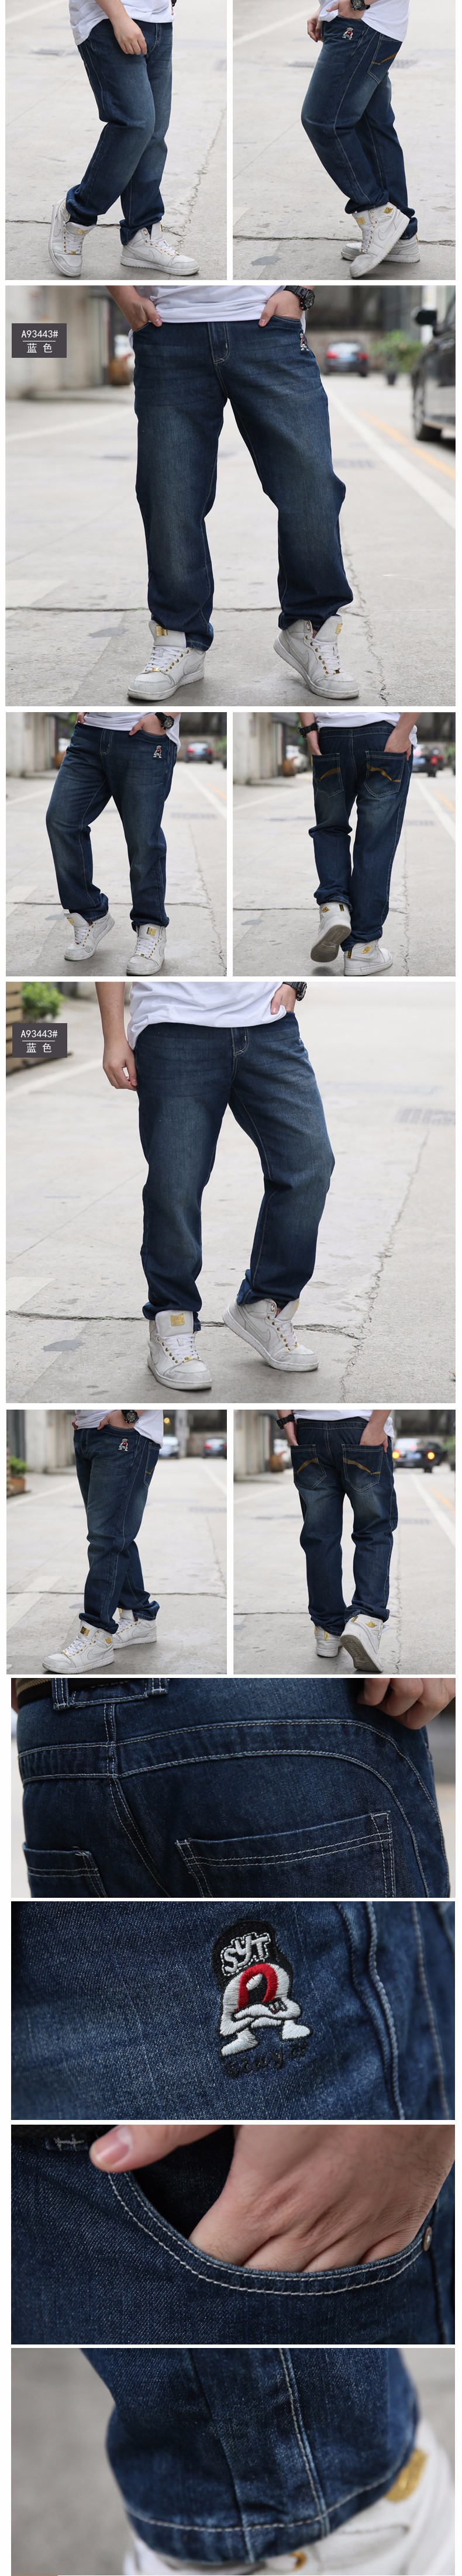 New 2016 Fashion Jeans Men Embroidery Designer Baggy Hip Hop Mens Jeans Famous Brand Straight Denim male Pants Trousers A93443 in Jeans from Men's